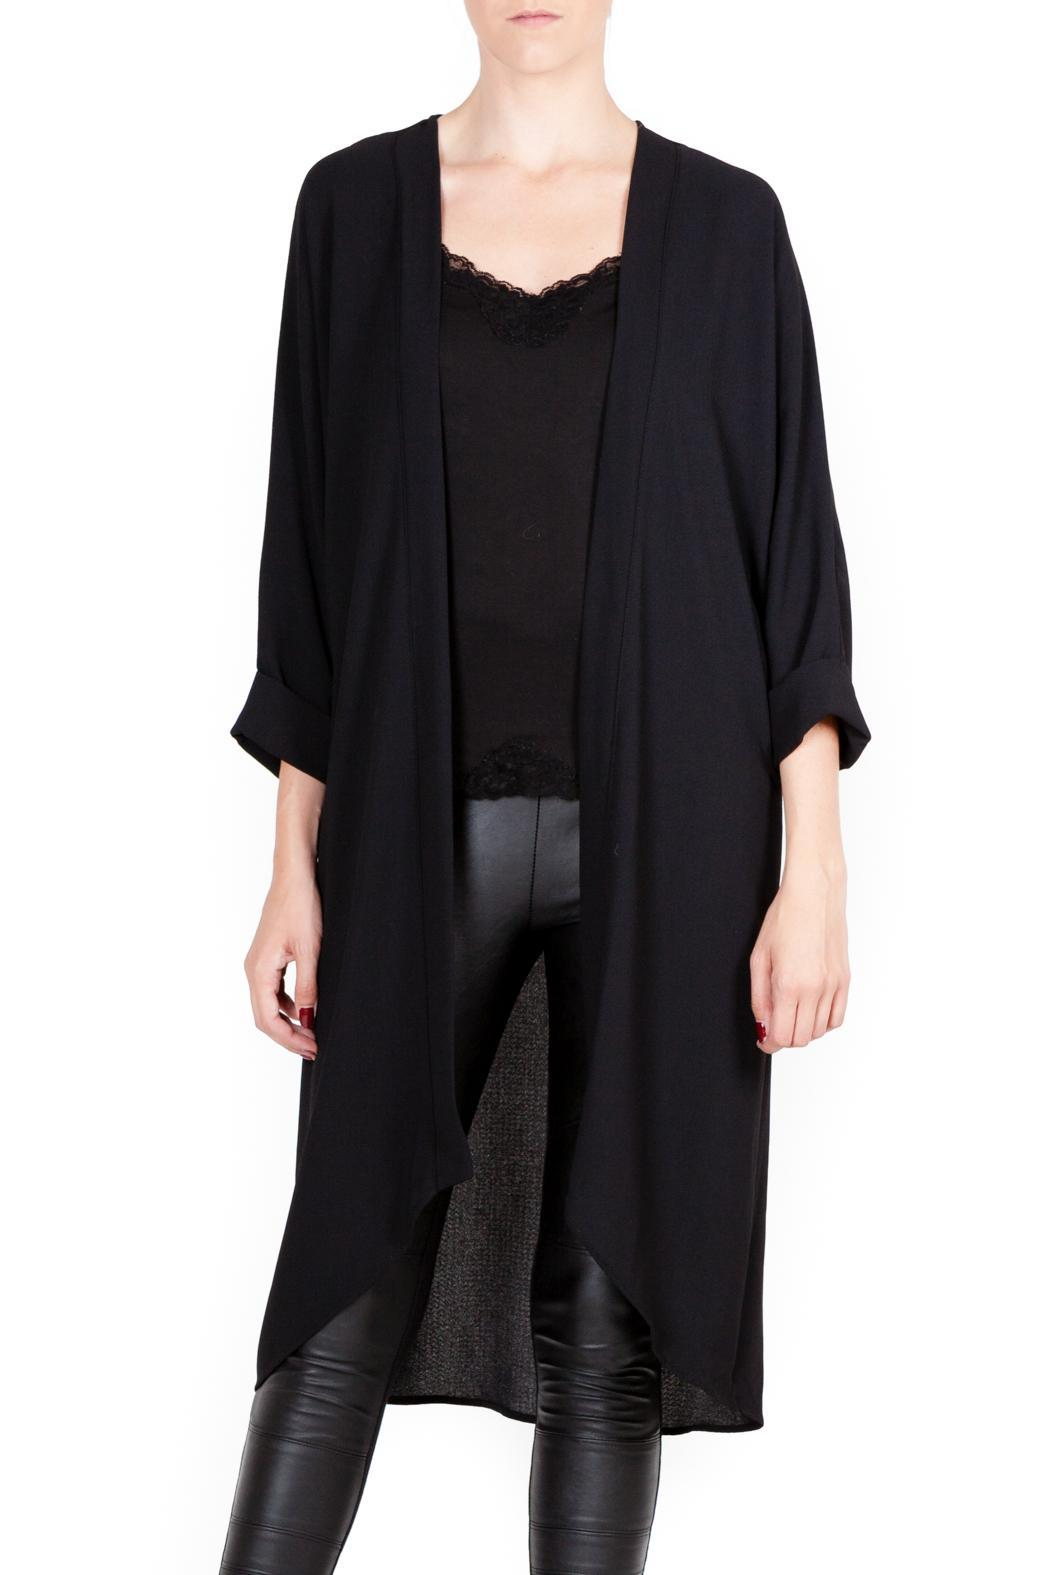 Muse Social Fashion House Black Sheer Cardigan from Canada ...